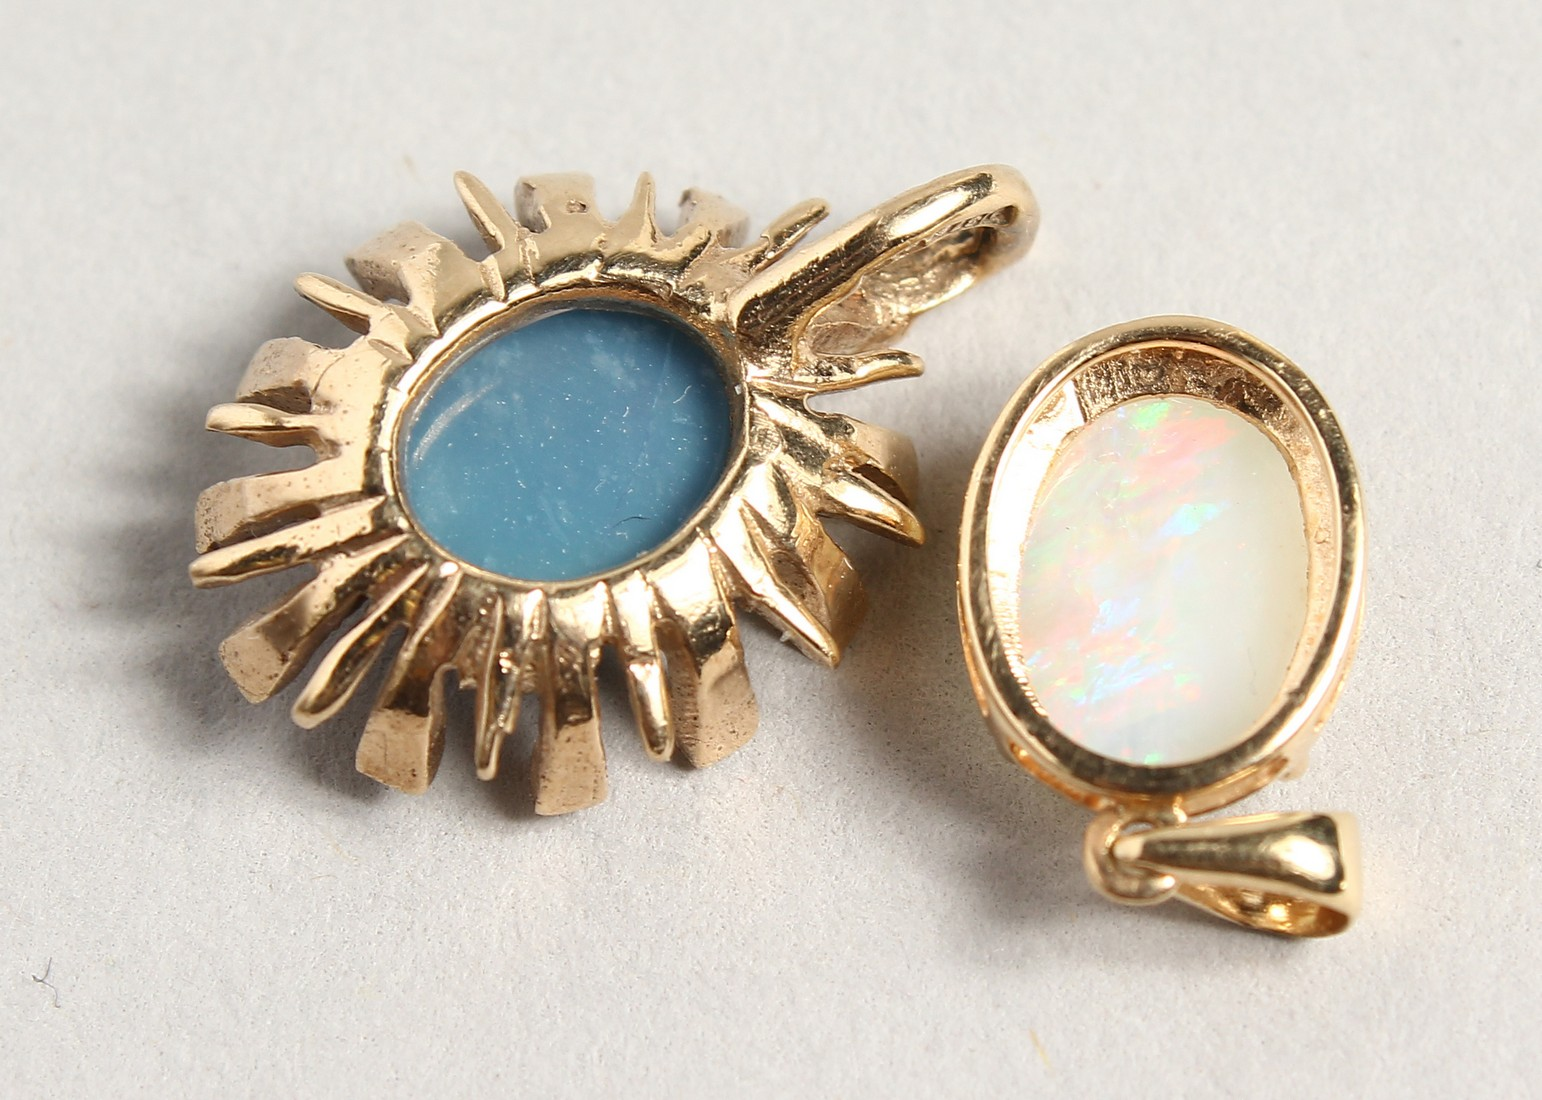 TWO SMALL GOLD OPAL PENDANTS - Image 3 of 3